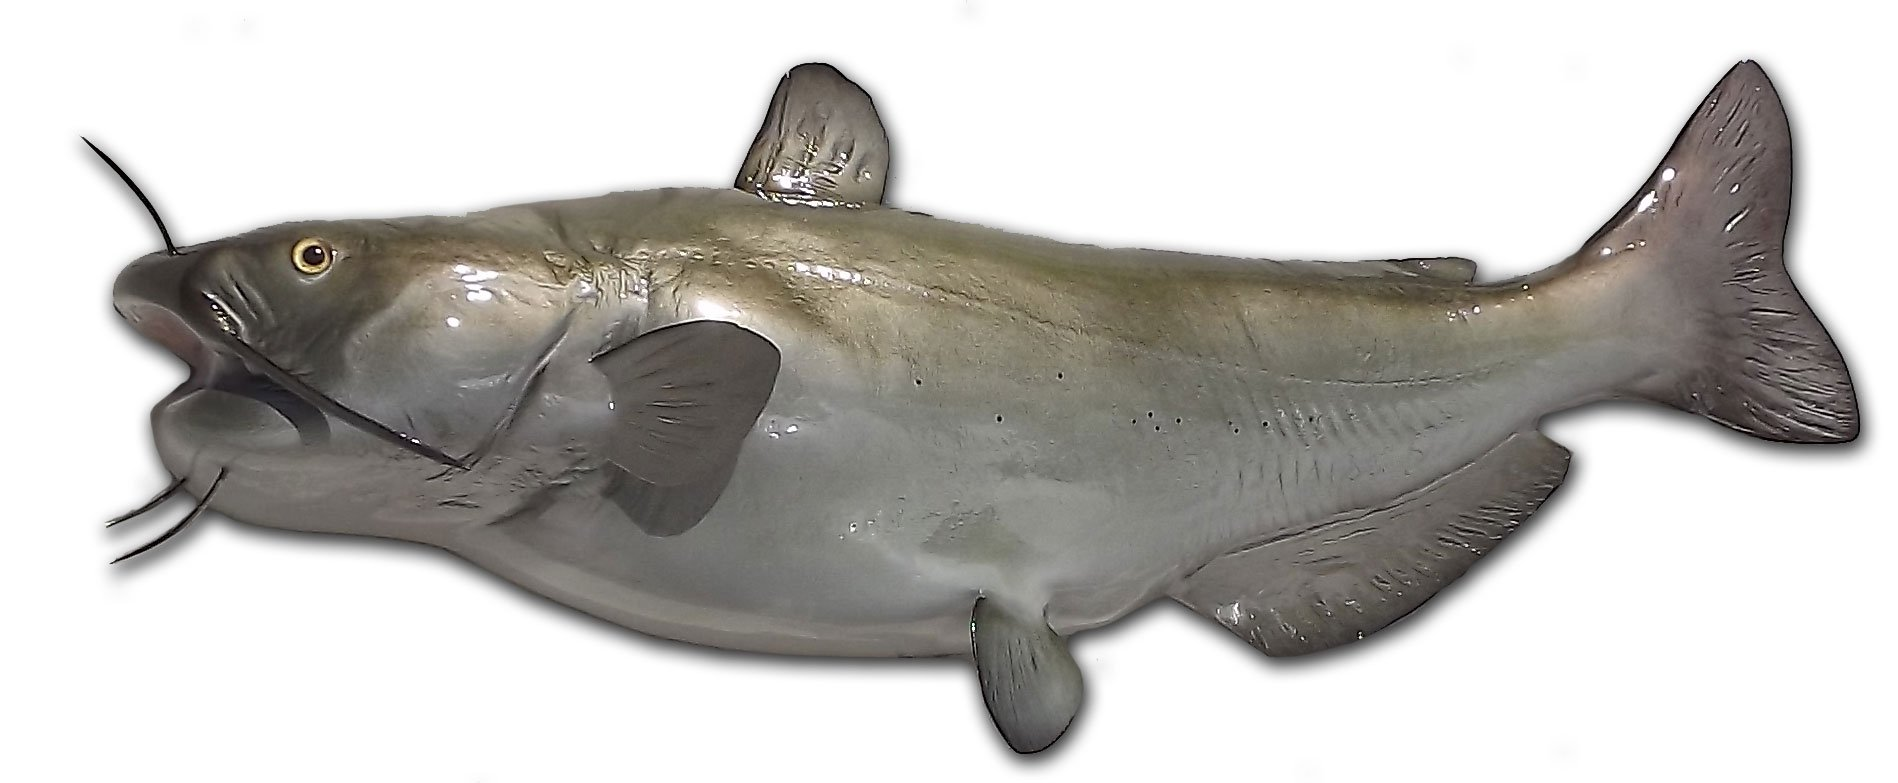 31'' Channel Catfish Half Mount Fish Replica - Low Price Guarantee -  Perfect Cabin Themed Wall Decor